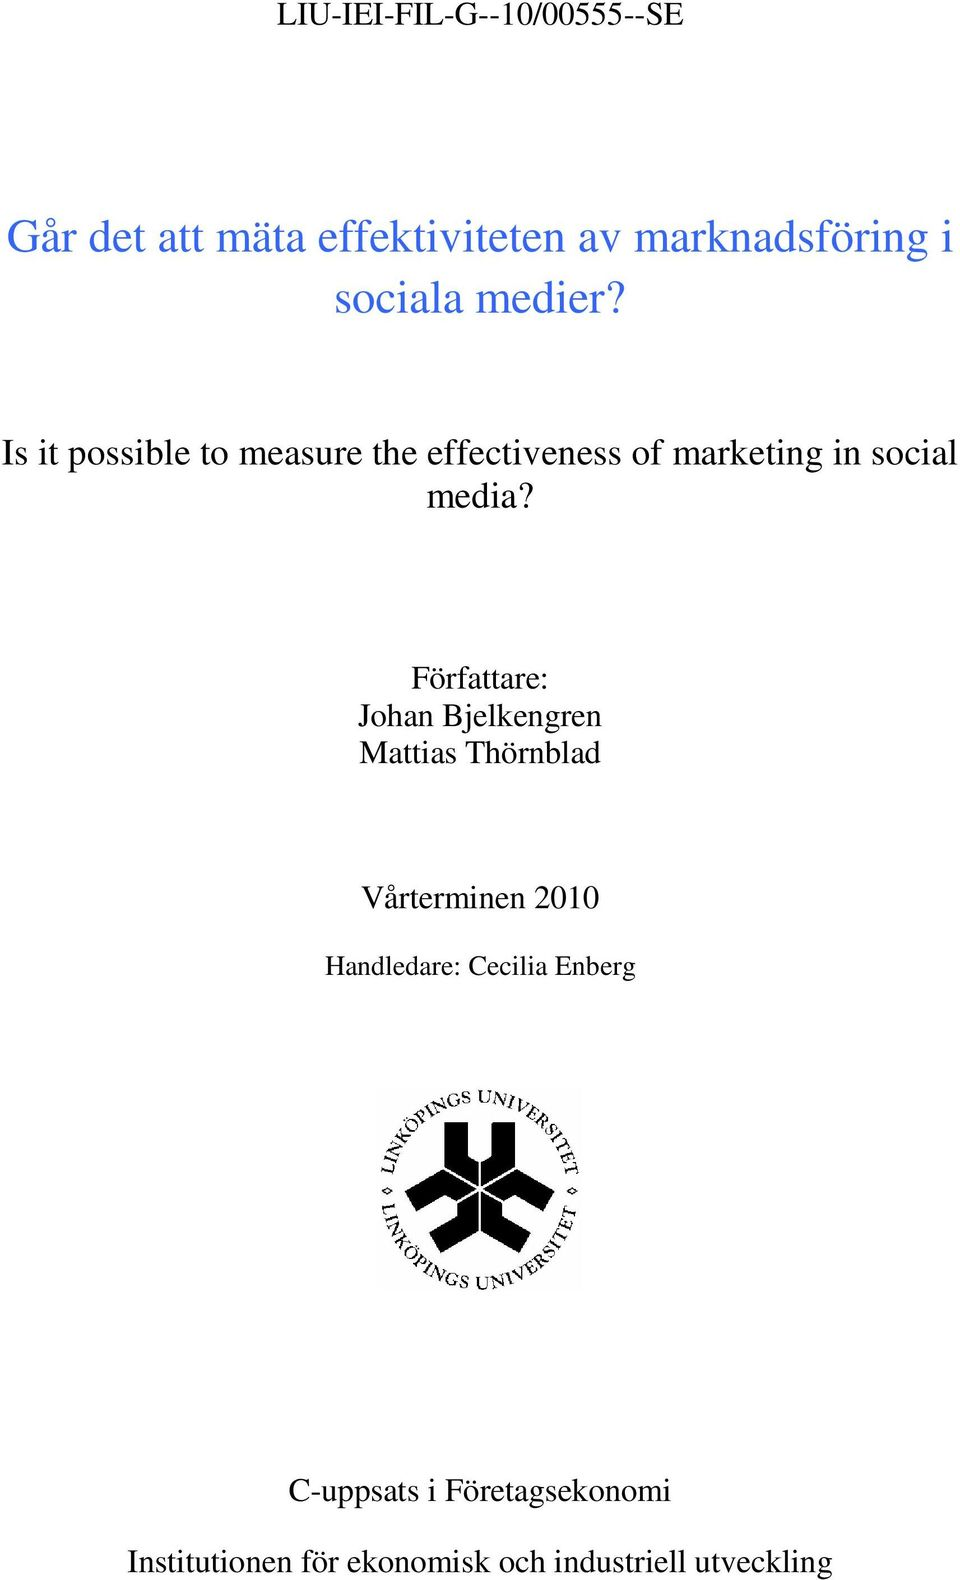 Is it possible to measure the effectiveness of marketing in social media?